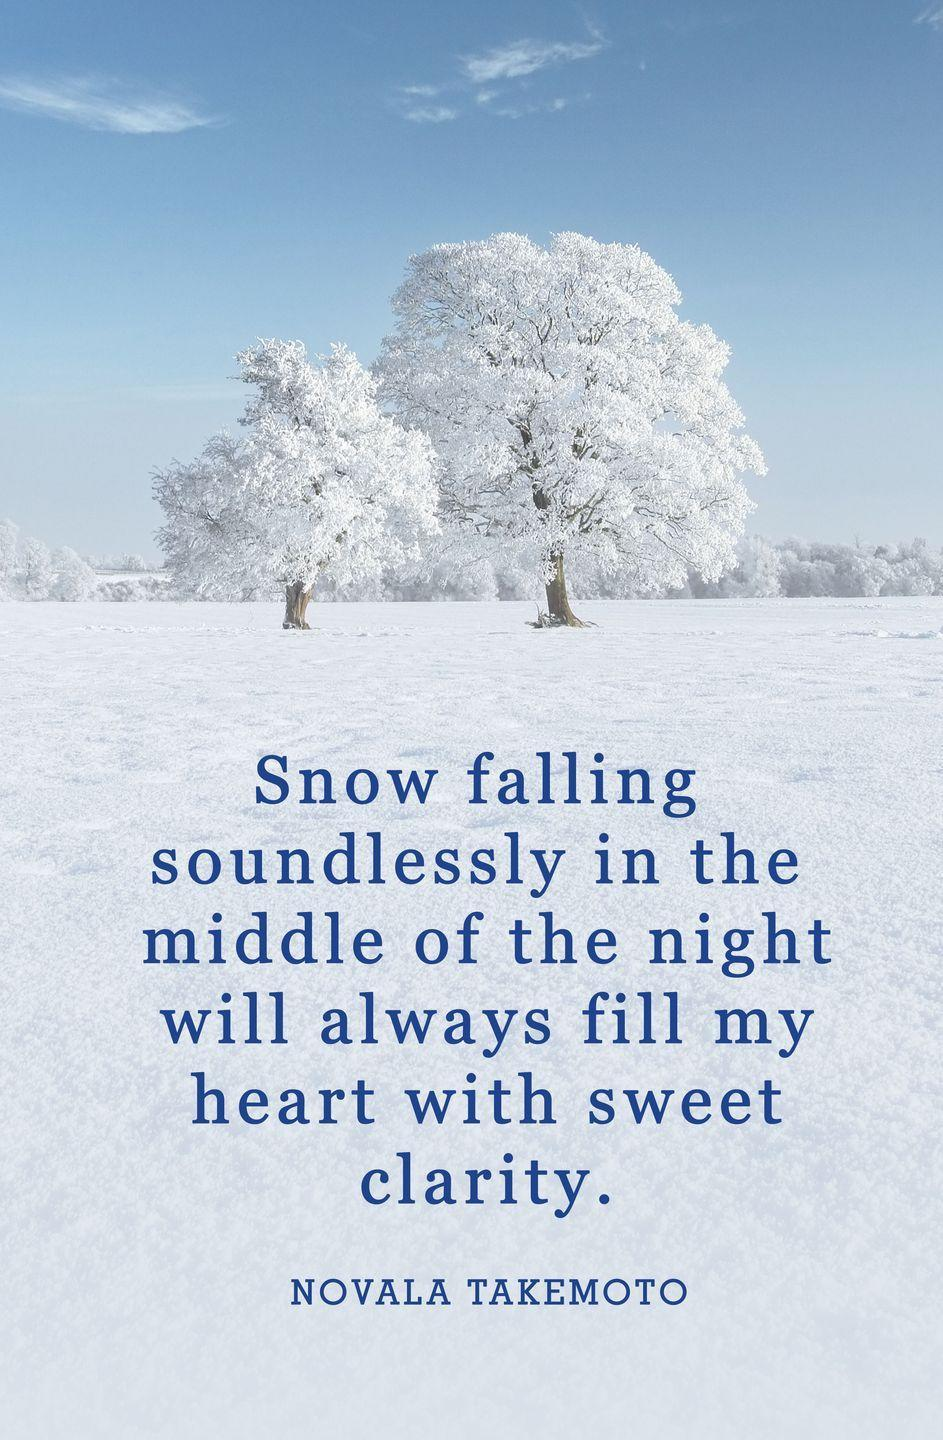 "<p>""Snow falling soundlessly in the middle of the night will always fill my heart with sweet clarity.""</p>"